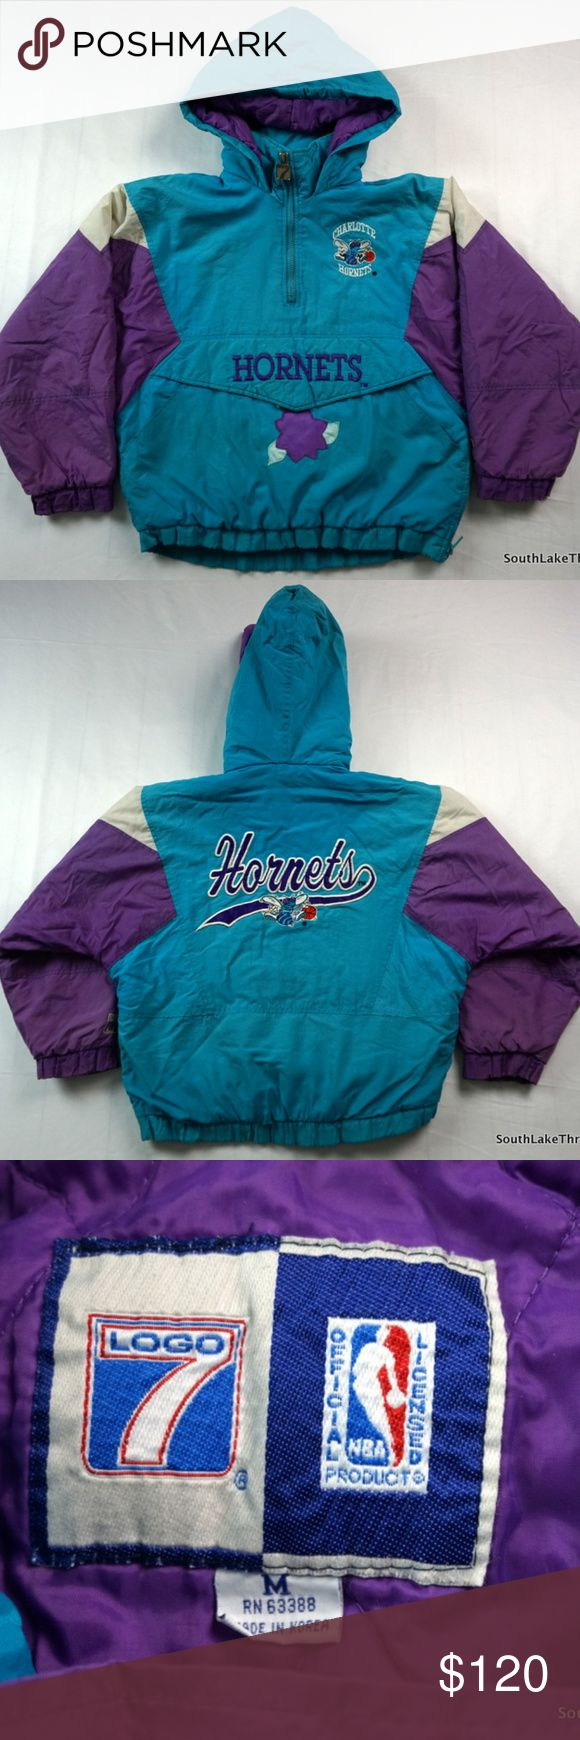 """VTG 90s Charlotte Hornets Winter Pullover Jacket Vintage 90s Charlotte Hornets Winter Pullover Jacket, Coat, Youth Boys Medium, NBA Basketball, Teal/Purple/White Hood, Logo 7, 90s Fashion  Brand:      Logo 7 Official NBA Color:       Teal/Purple/White Material:  Shell 100% Nylon, Lining 100% Nylon, filling 100% Polyester  Detailed Measurements: (Front Side of Garment has been measured laying flat on a table)  Sleeves:    25"""" inches  Chest:       21"""" inches Length:     22"""" inches Logo 7…"""